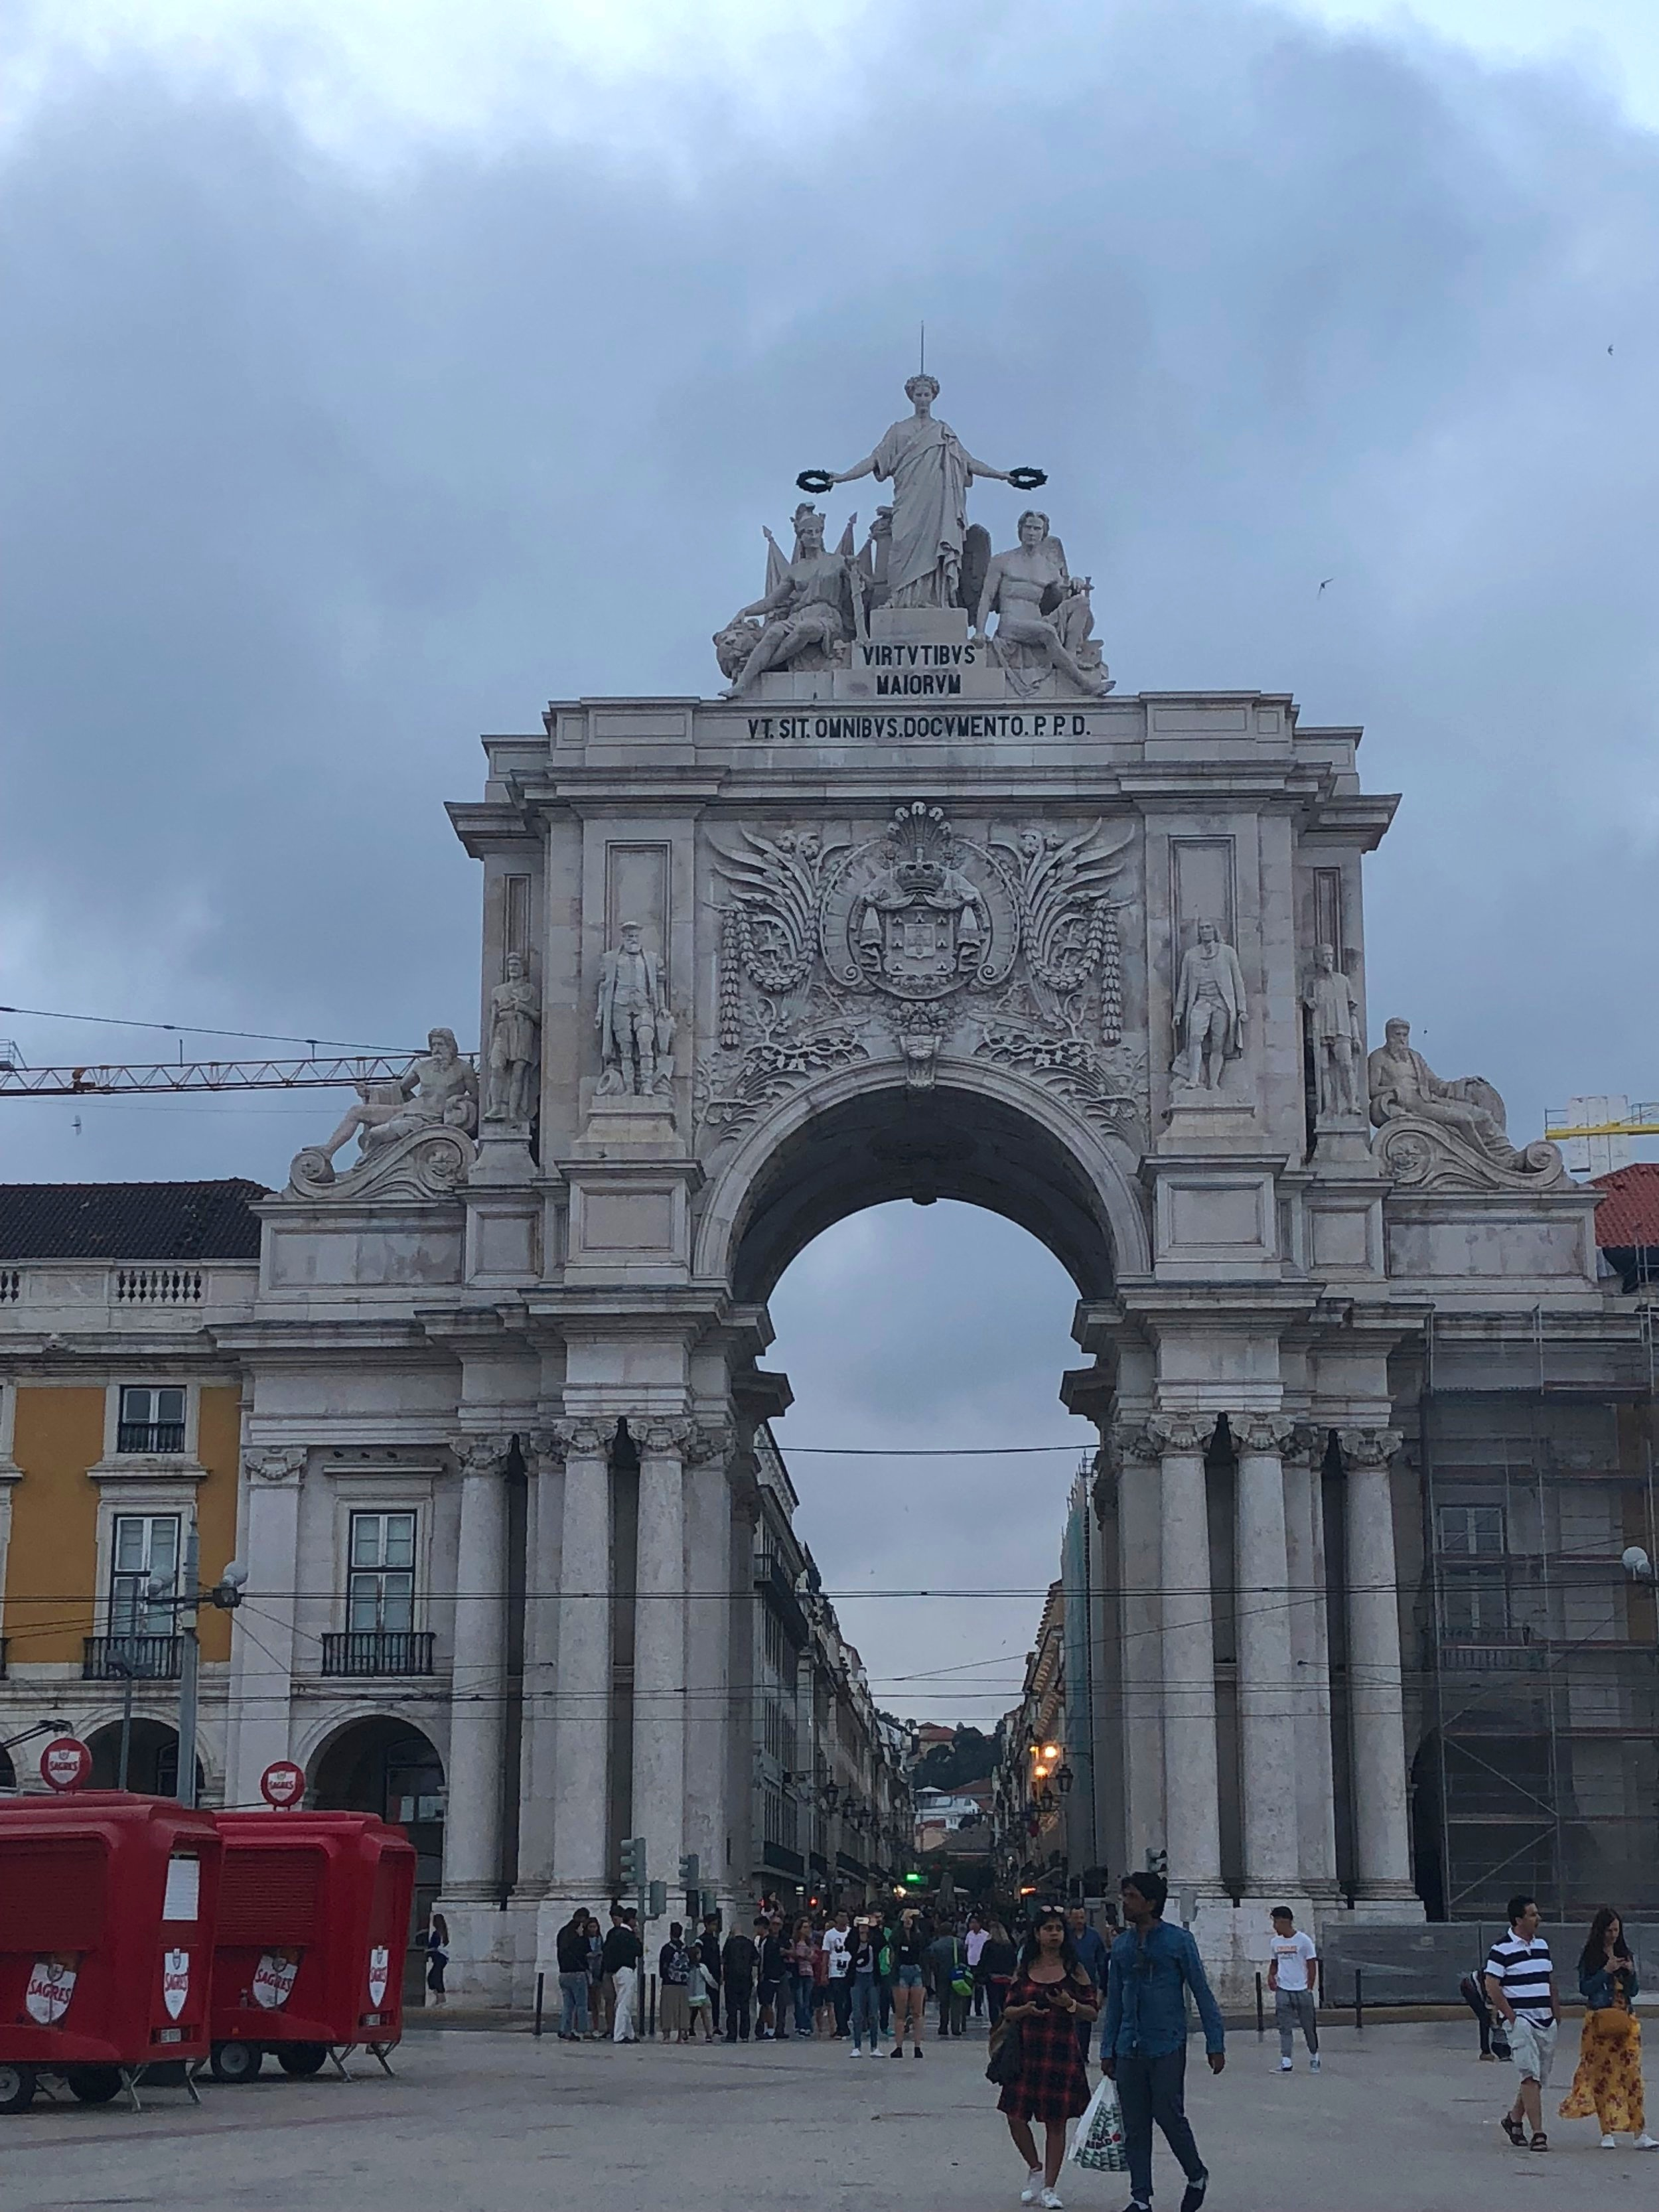 View of the arch from inside the square